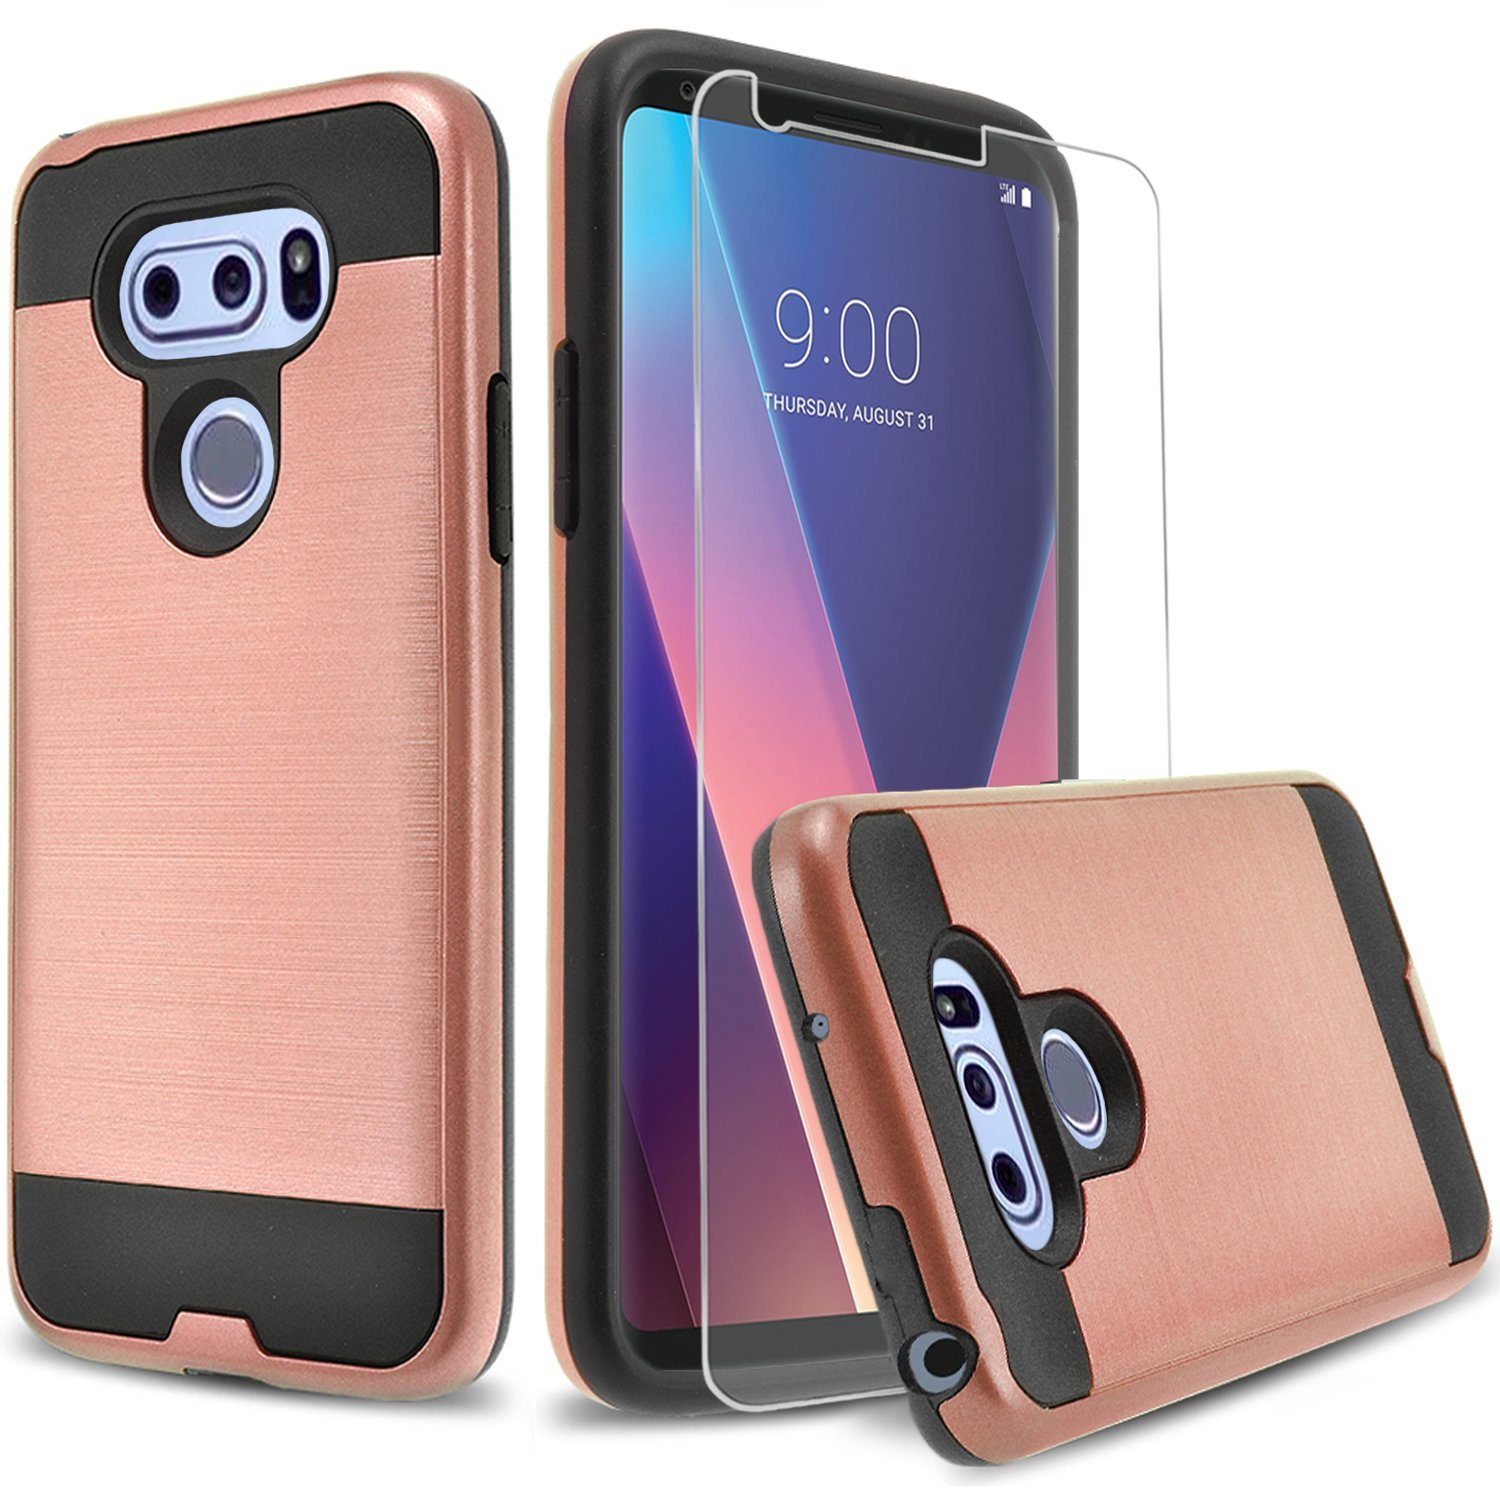 LG G7 Case, Circlemalls 2-Piece Style Hybrid Shockproof Phone Cover With [Premium Screen Protector] And Touch Screen Pen (Black)